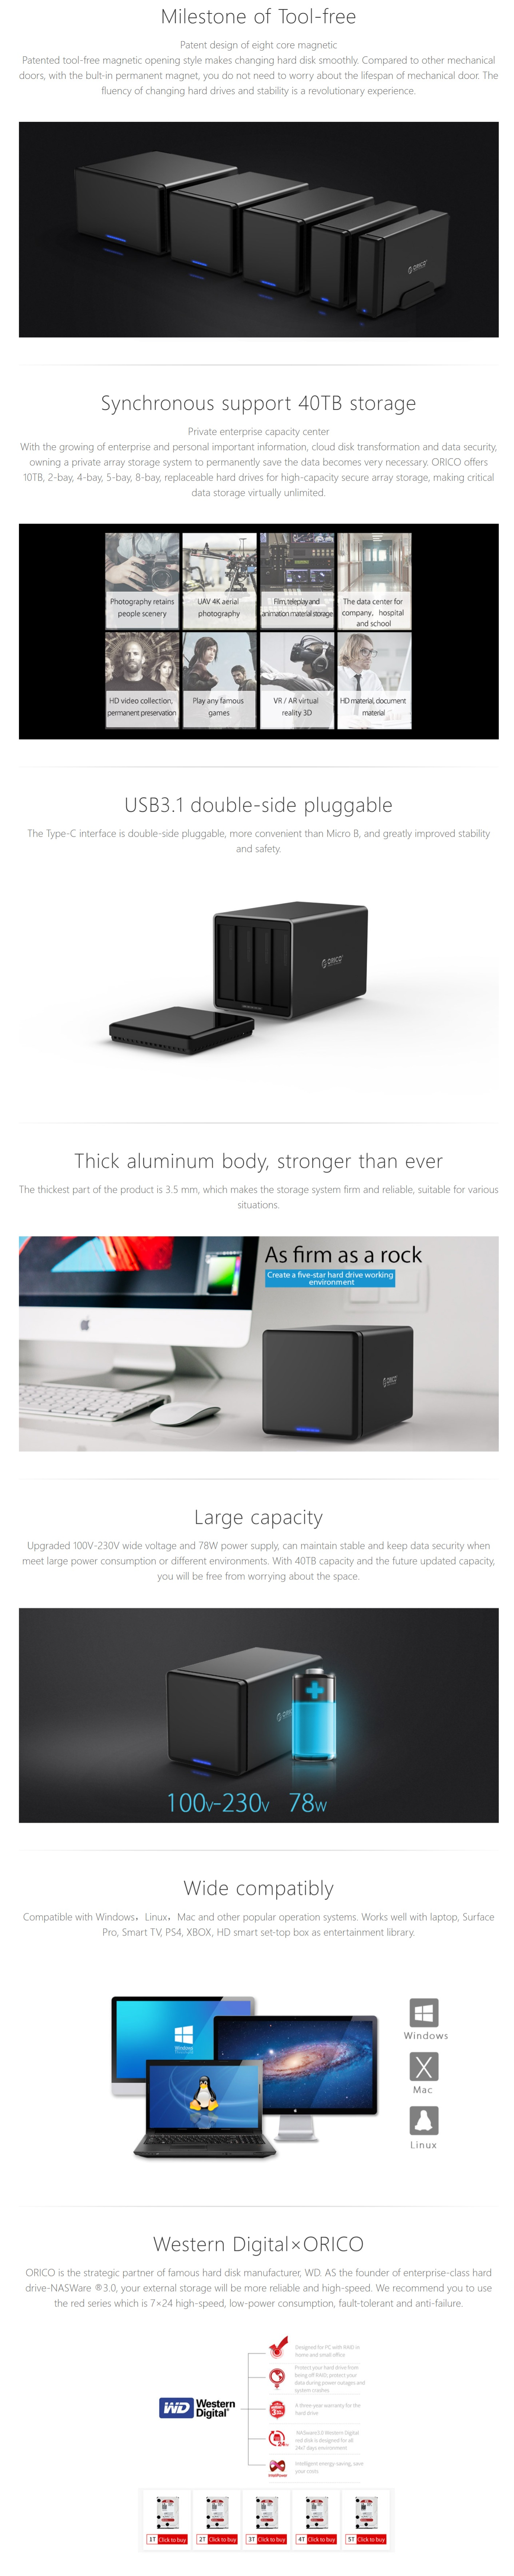 A large marketing image providing additional information about the product ORICO 4 Bay Type-C Hard Drive Enclosure - Additional alt info not provided